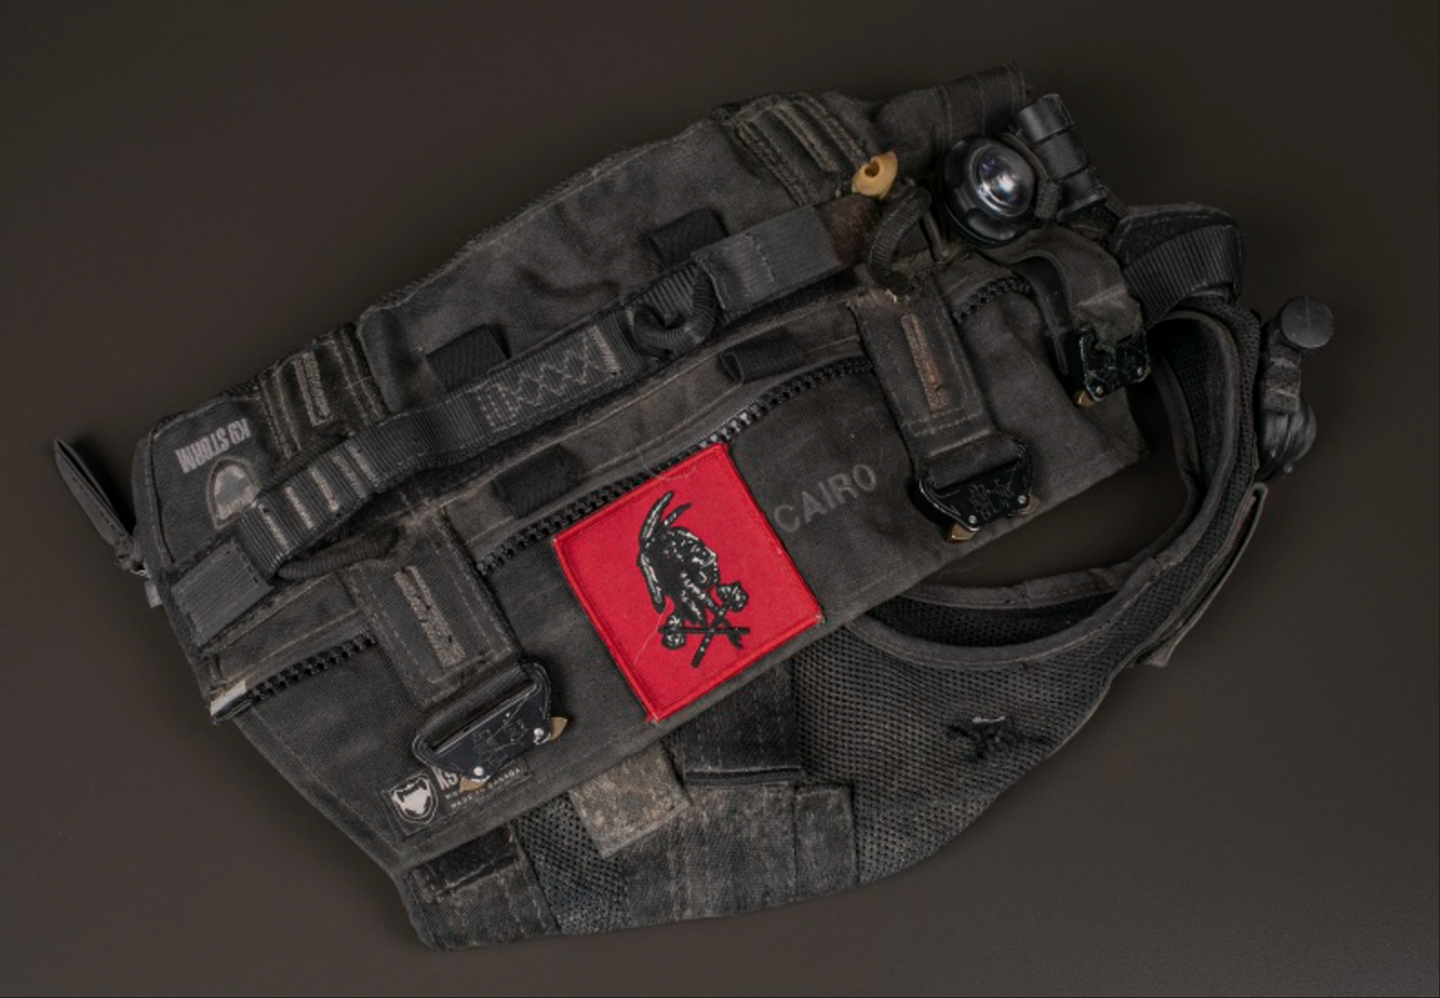 Photo of the combat vest worn by SEAL K9 Cairo during the raid on Osama bin Laden's compound